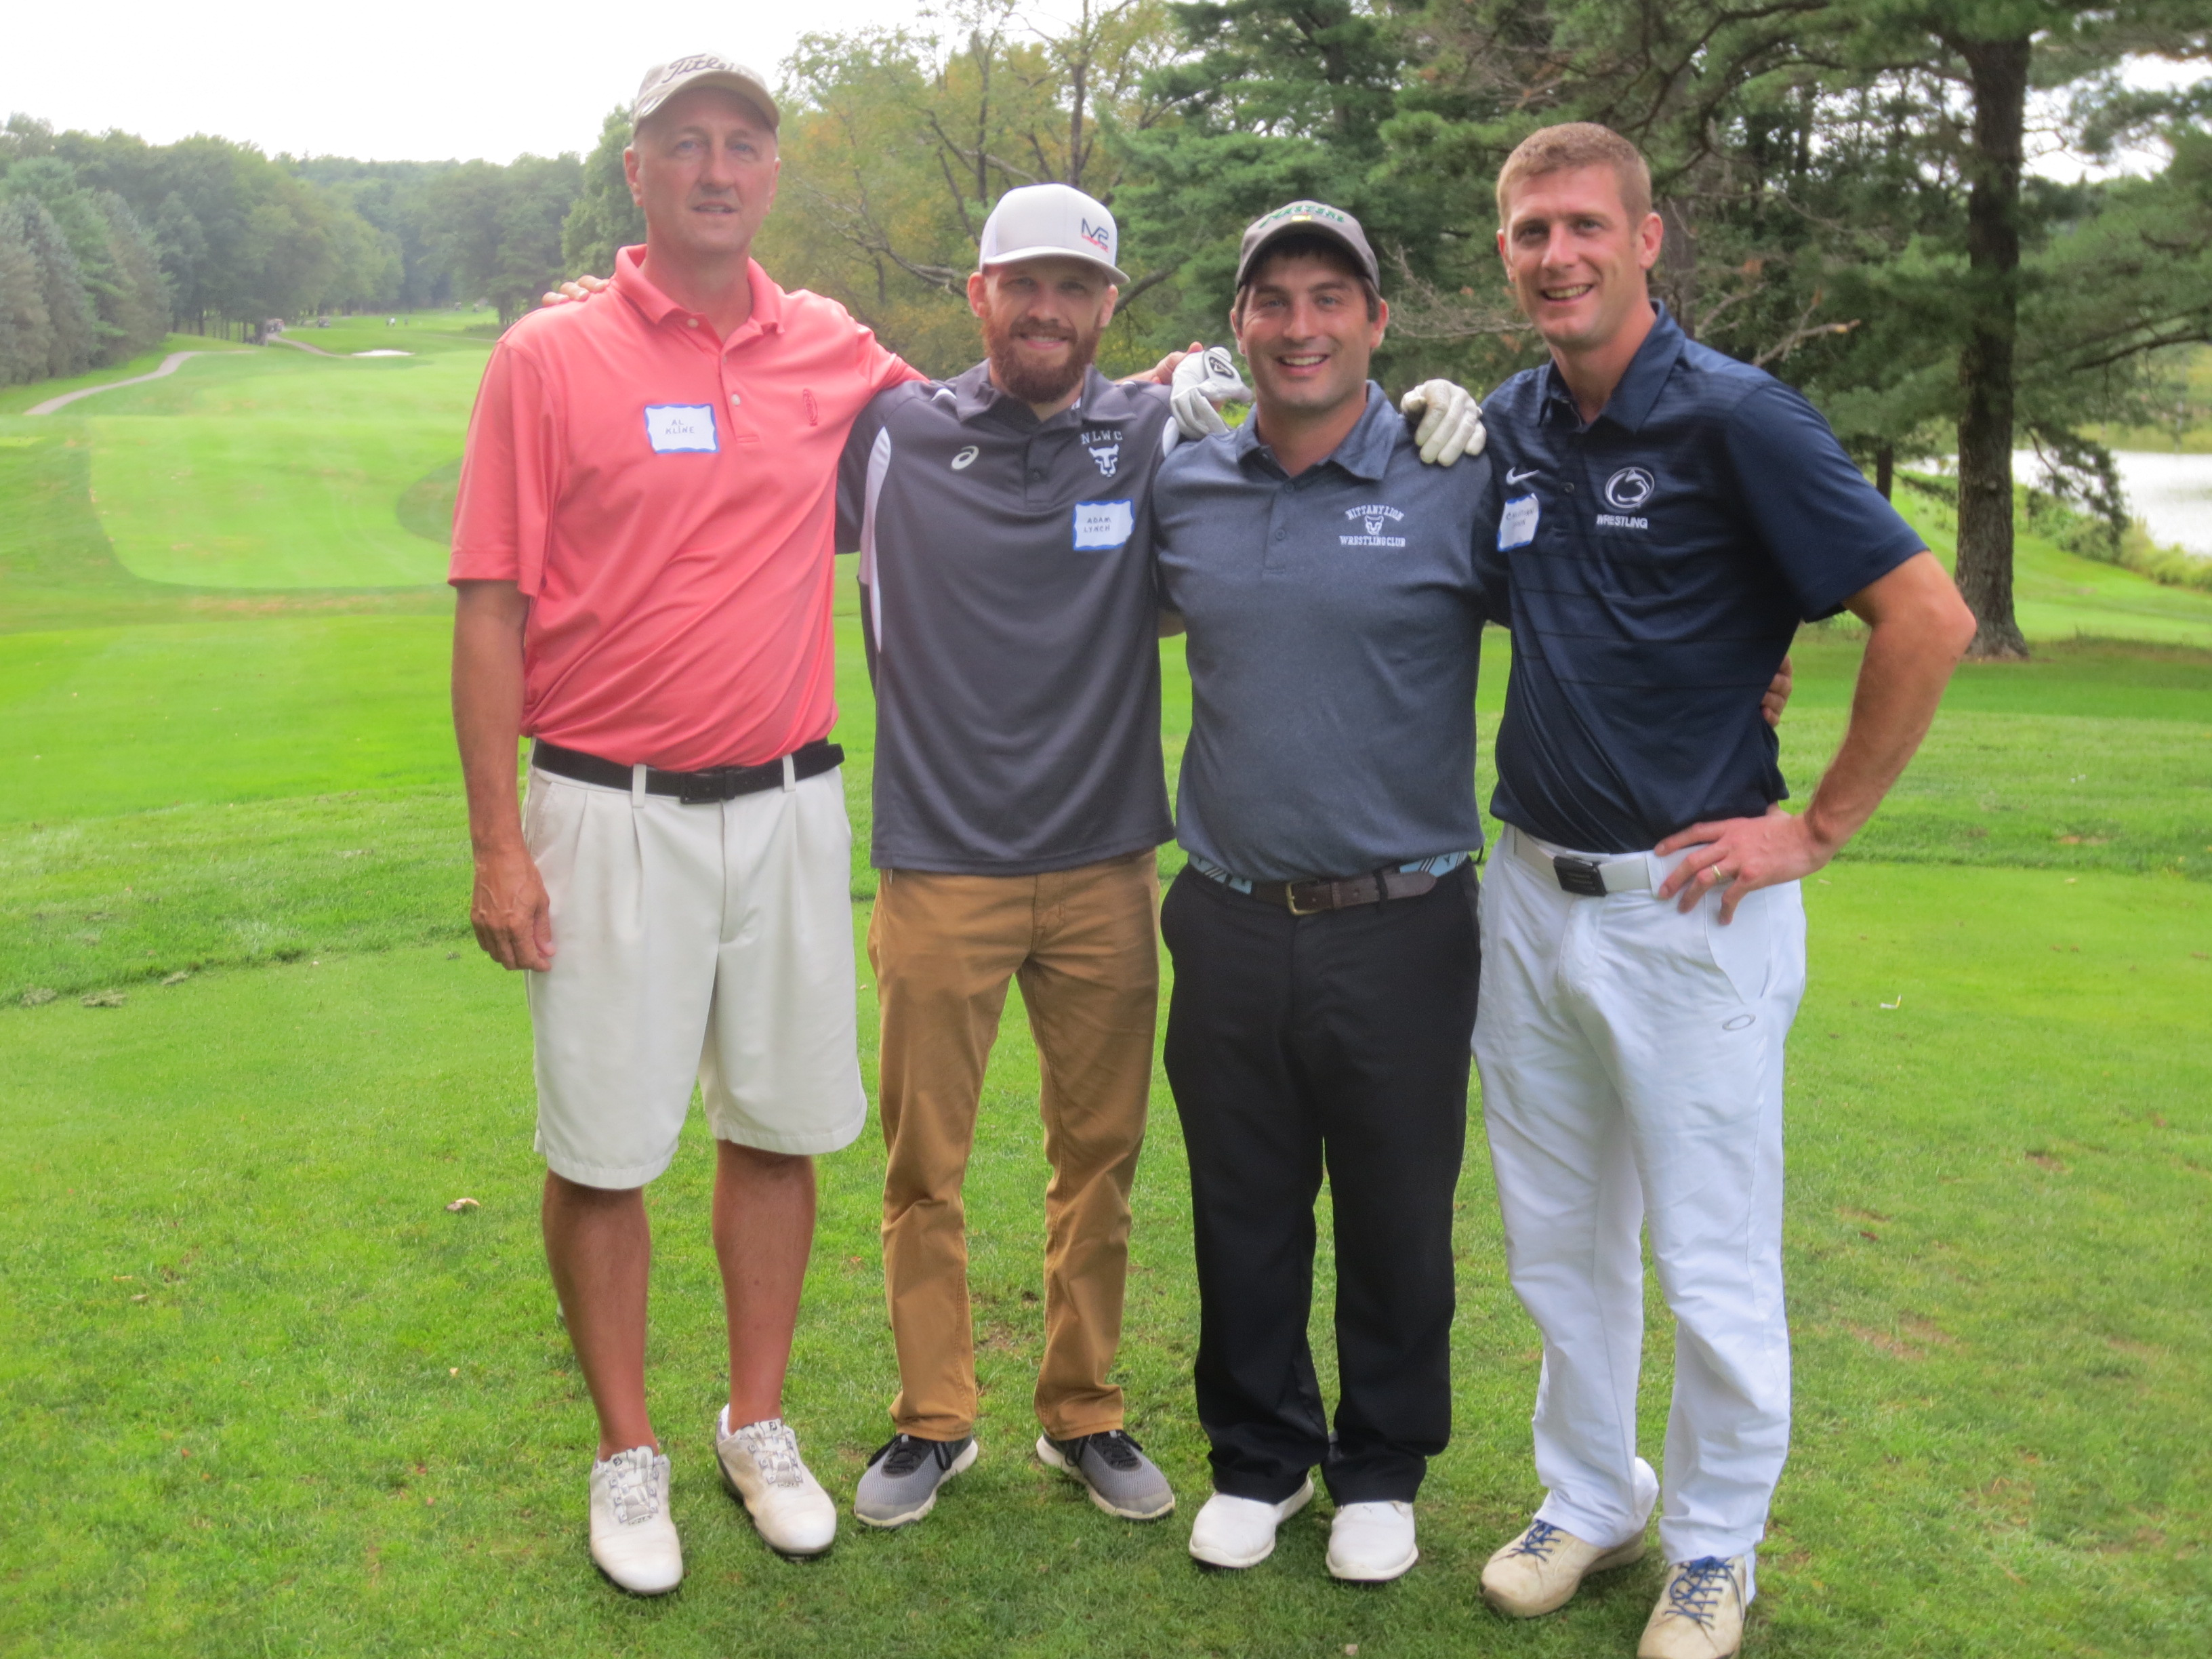 Al Kline Jr., Adam Lynch, Mark Stockdale, Christian Snook